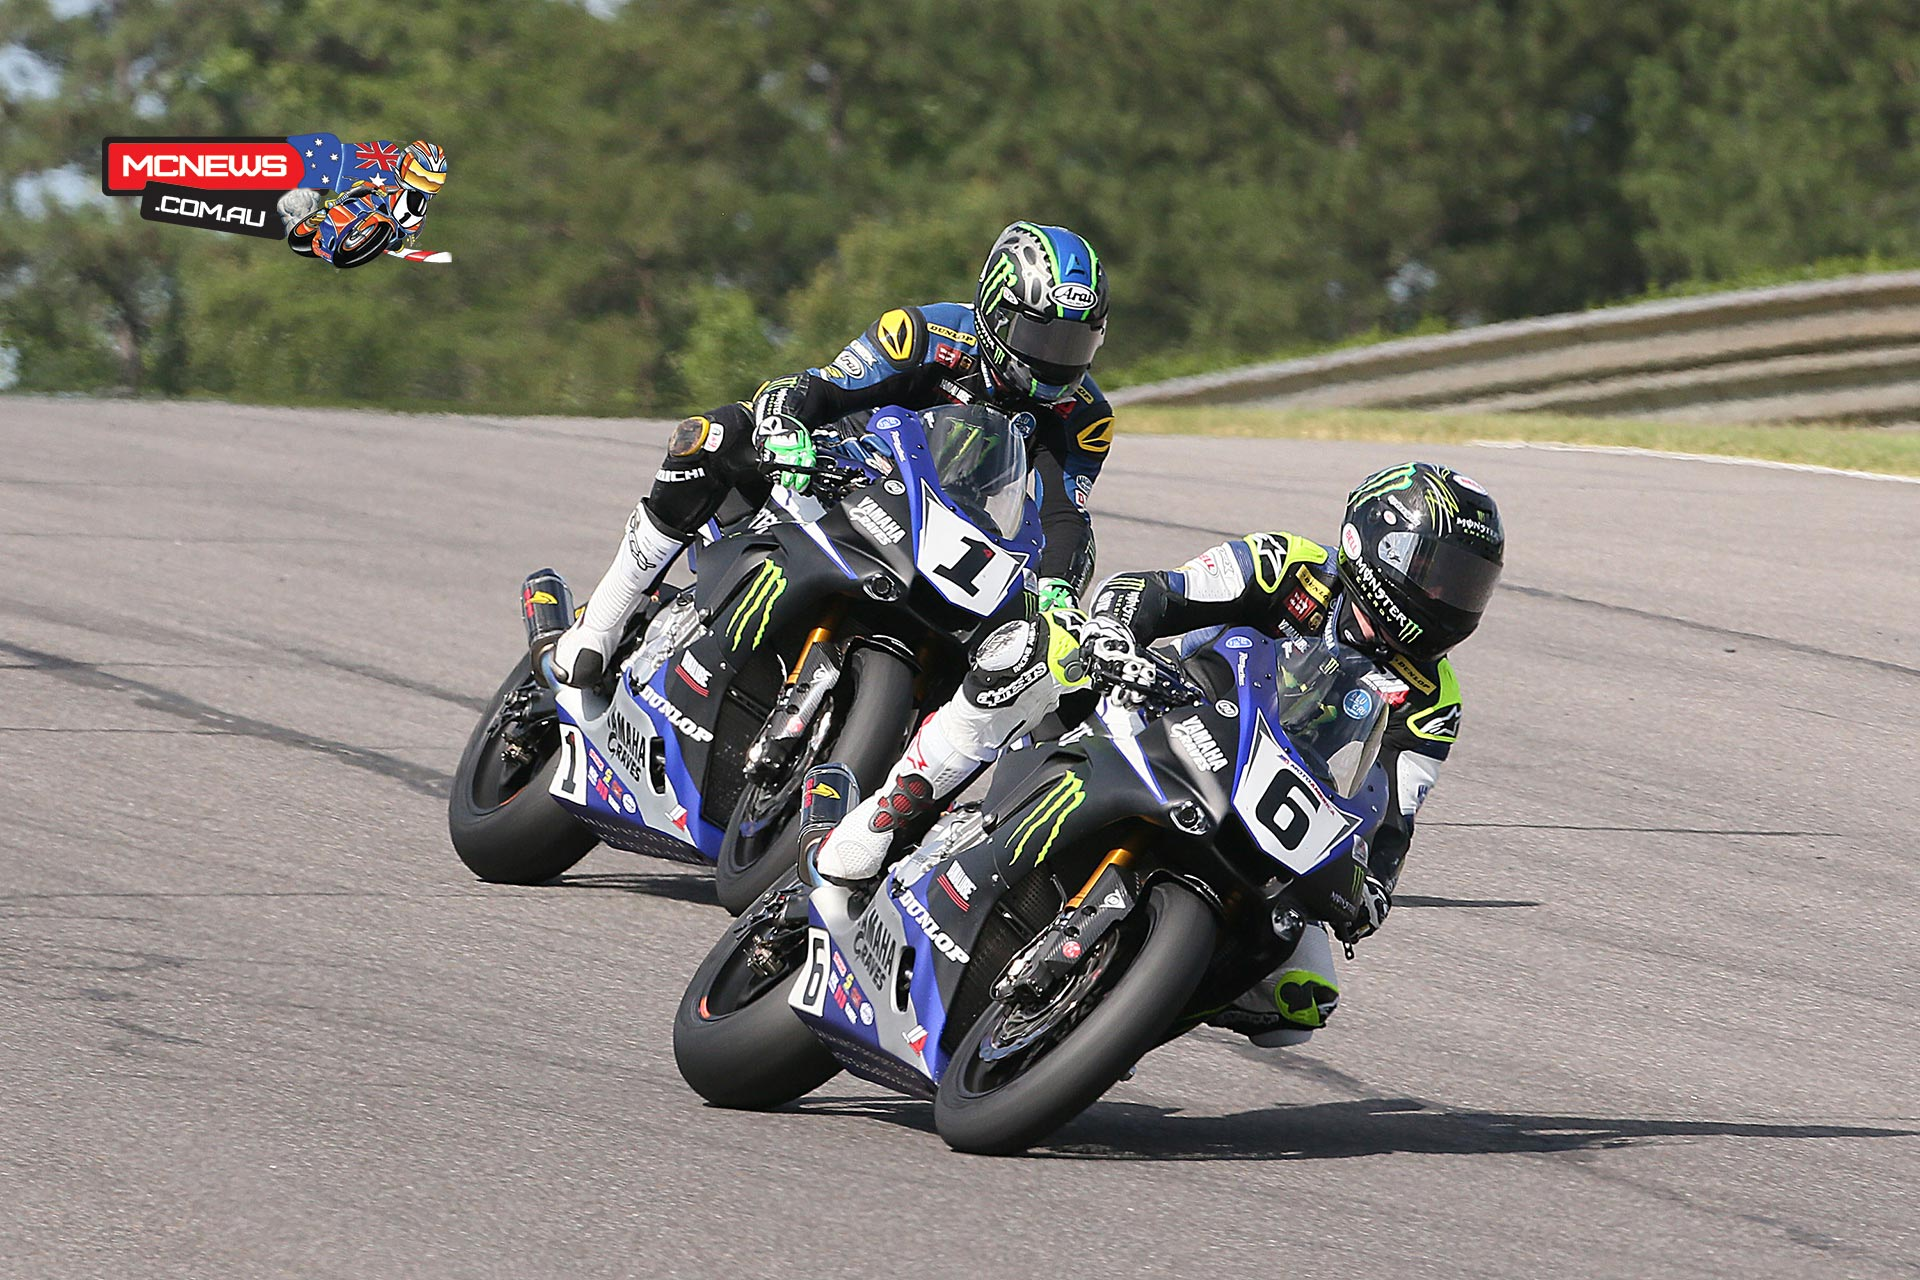 Cameron Beaubier (6) and his teammate Josh Hayes (1) split wins in Sunday's two MotoAmerica Superbike races at Barber Motorsports Park. Photography by Brian J. Nelson.